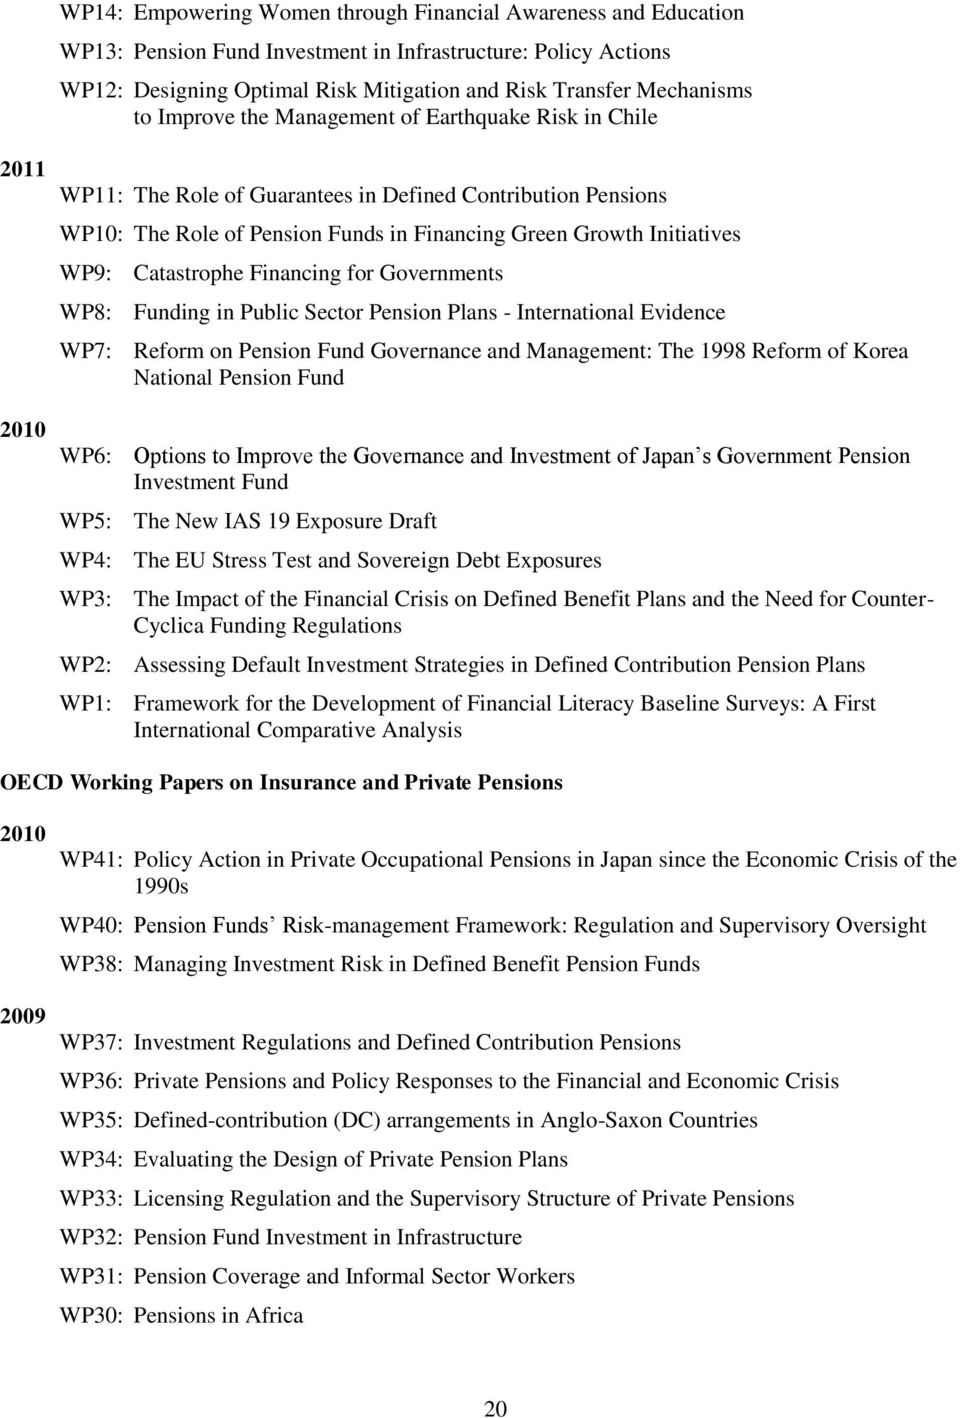 WP9: Catastrophe Financing for Governments WP8: Funding in Public Sector Pension Plans - International Evidence WP7: Reform on Pension Fund Governance and Management: The 1998 Reform of Korea